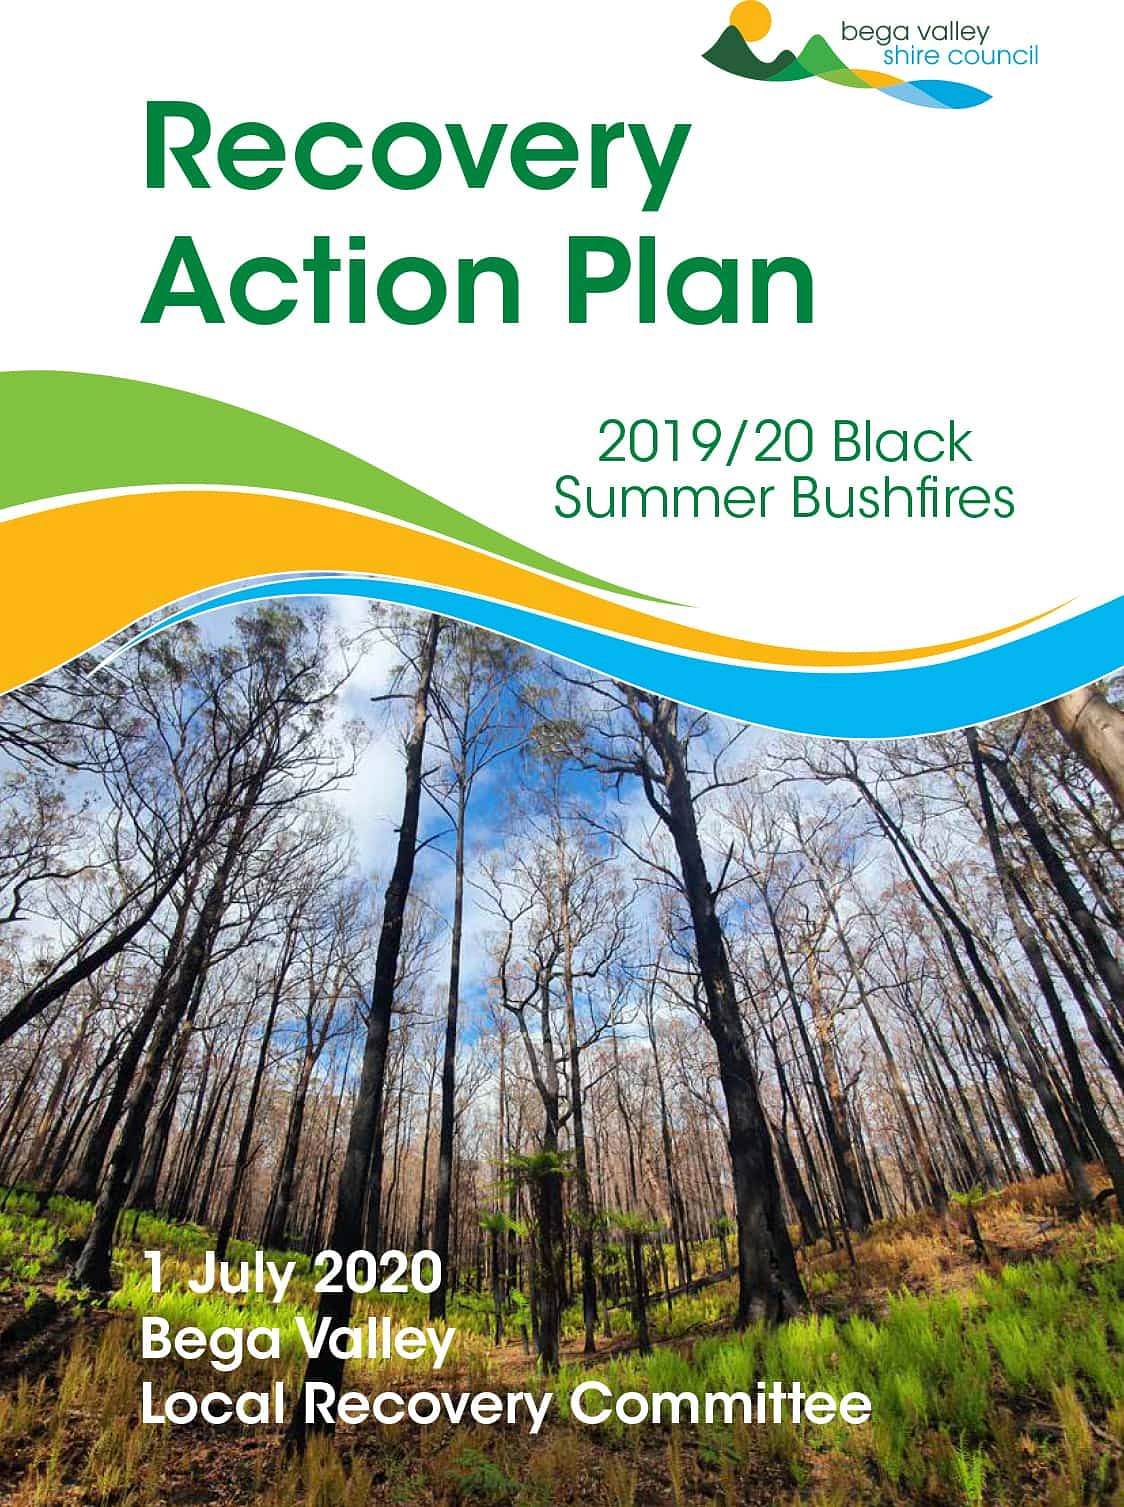 mage: Cover of the Bega Valley Recovery Action Plan and link to document.